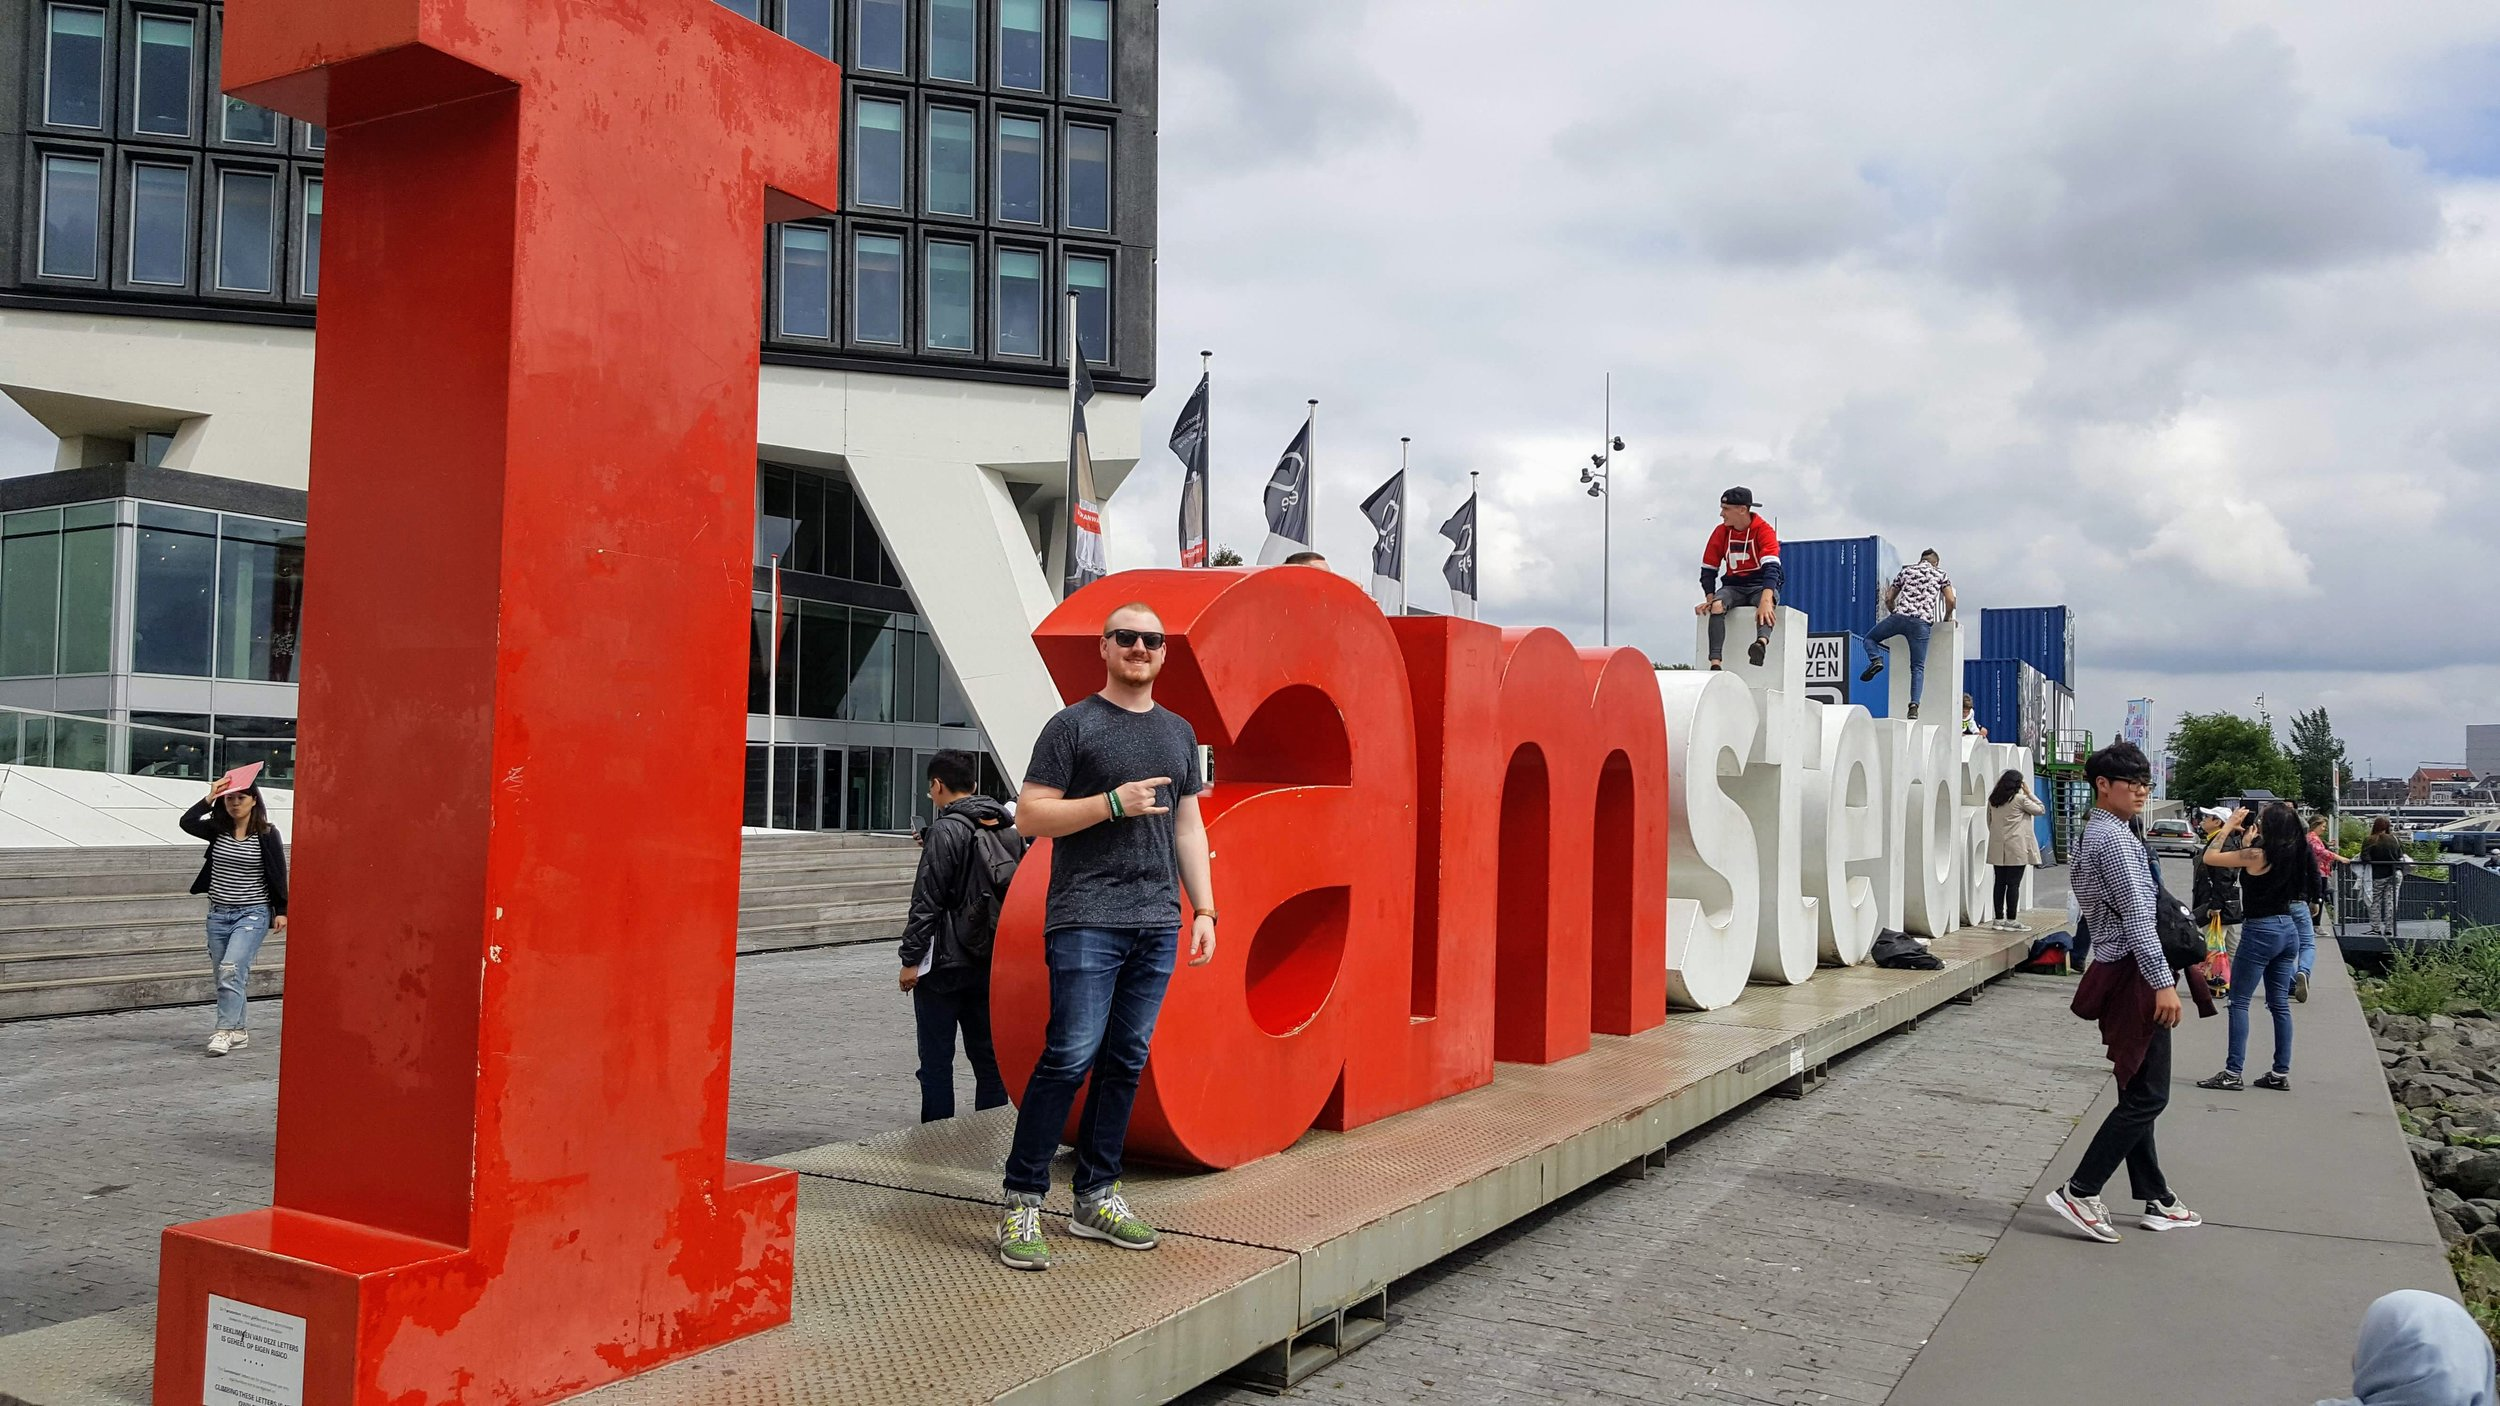 'I Amsterdam' in front of A'DAM Lookout